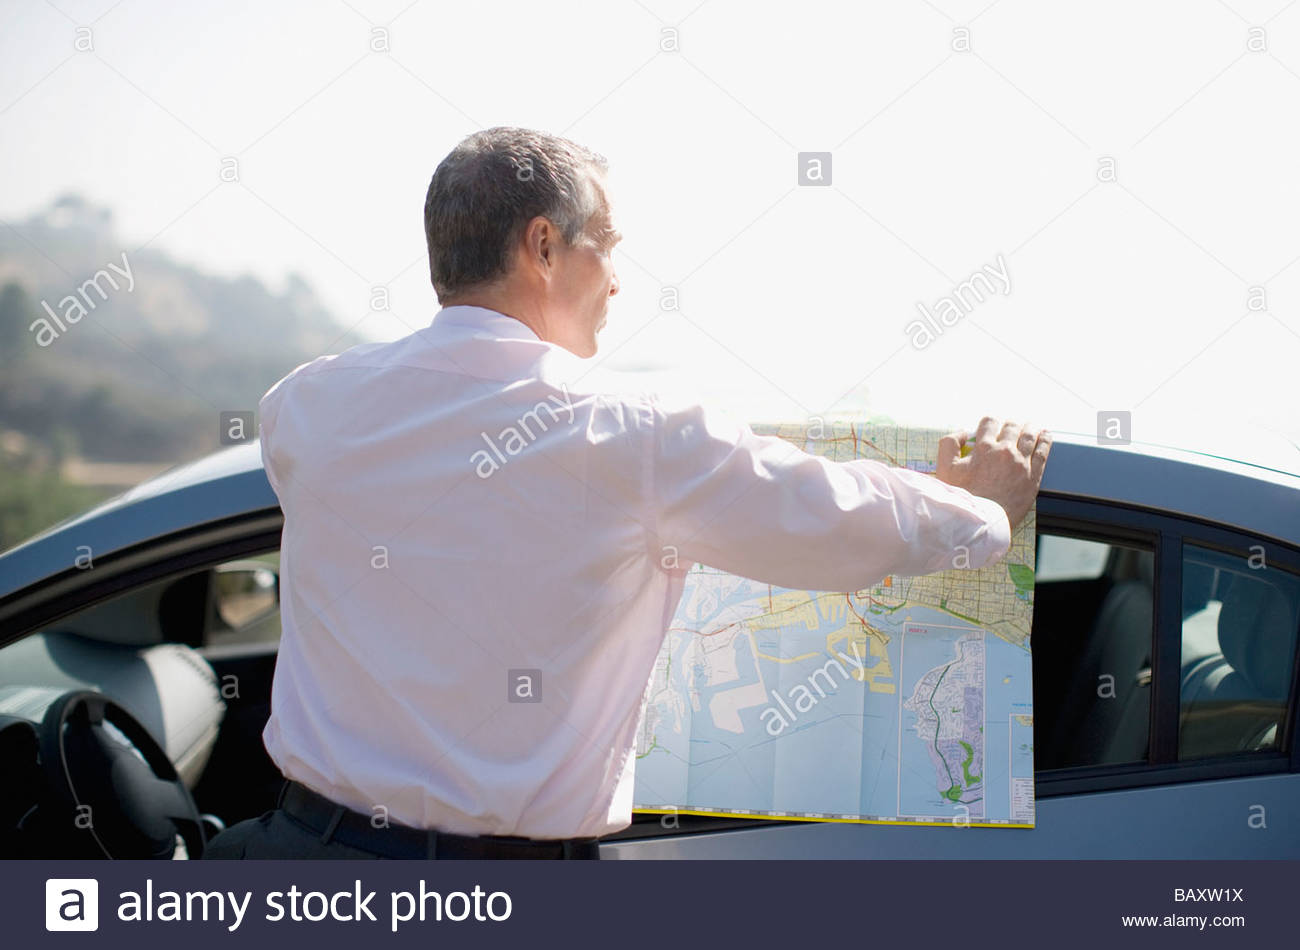 Businessman looking at map - Stock Image